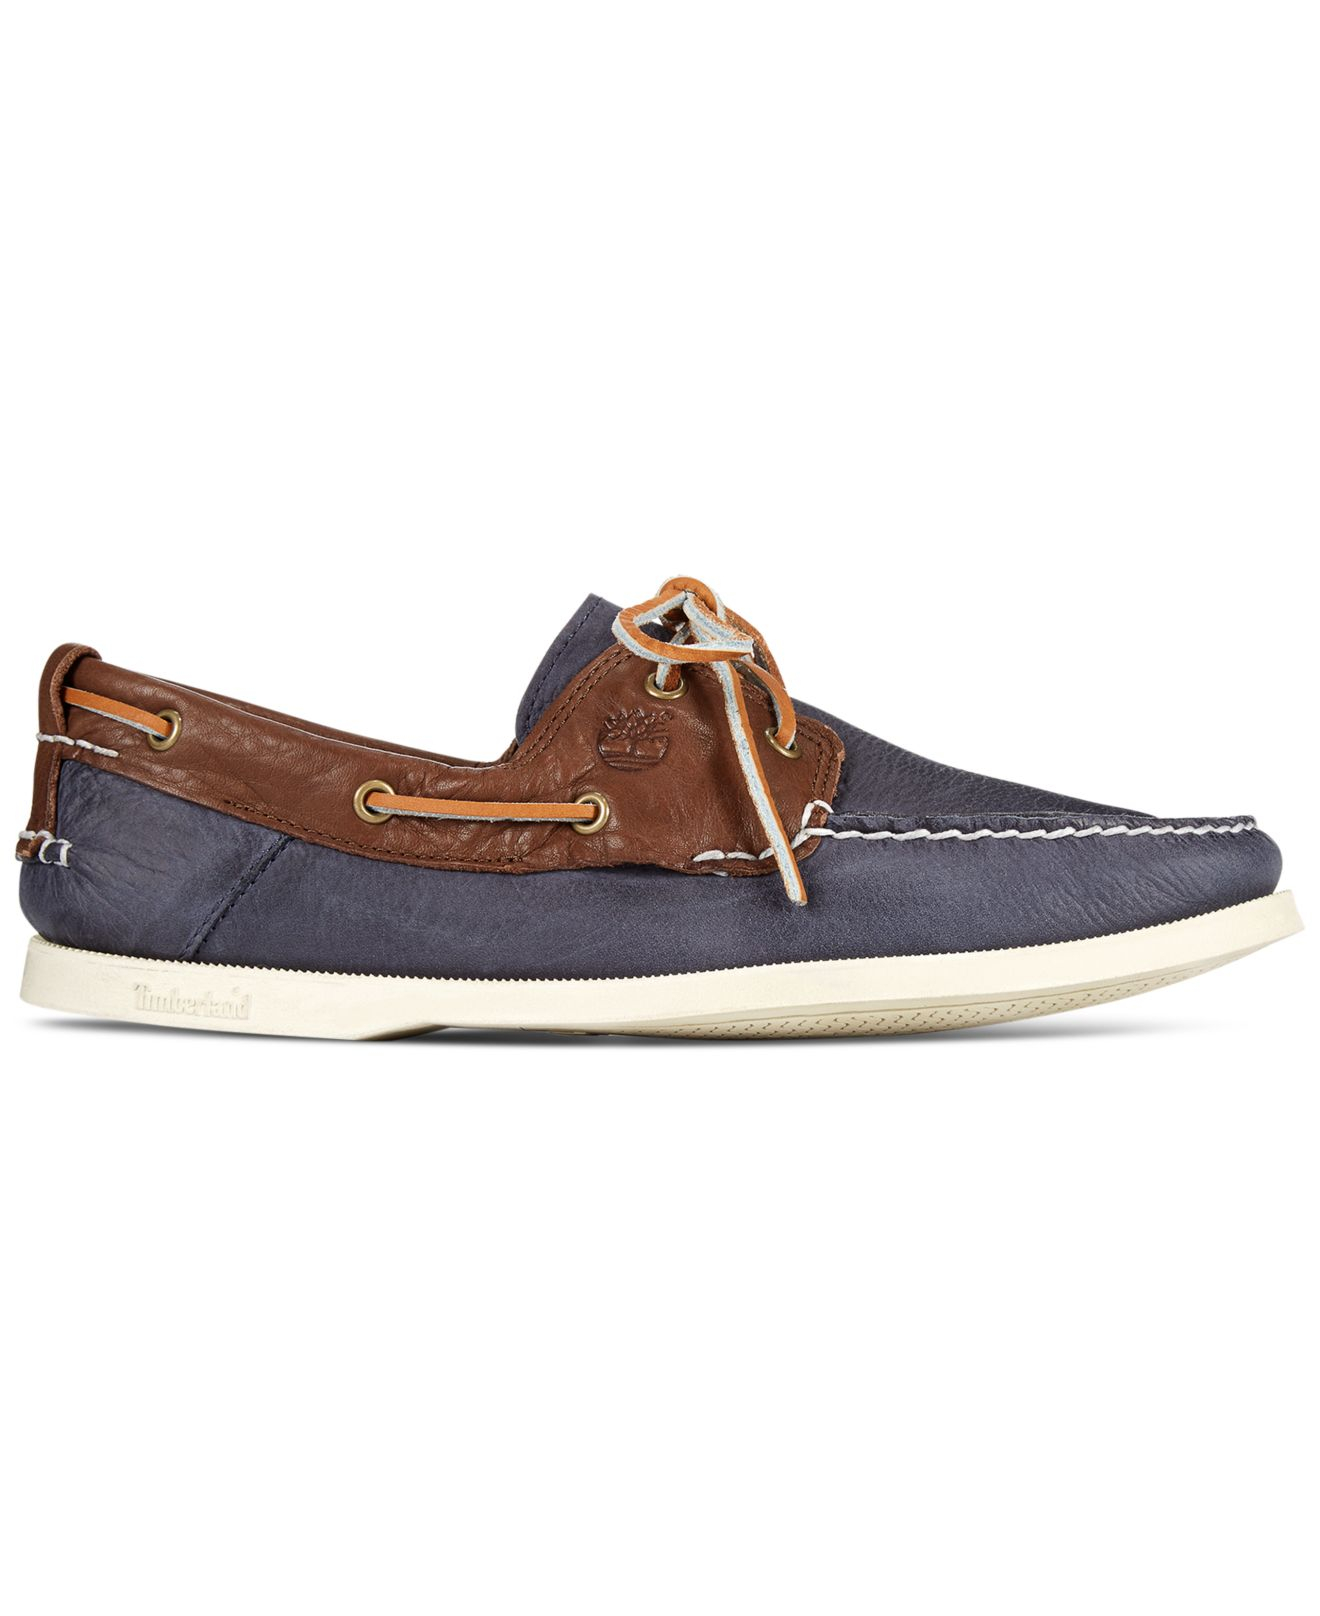 timberland boat shoes navy blue